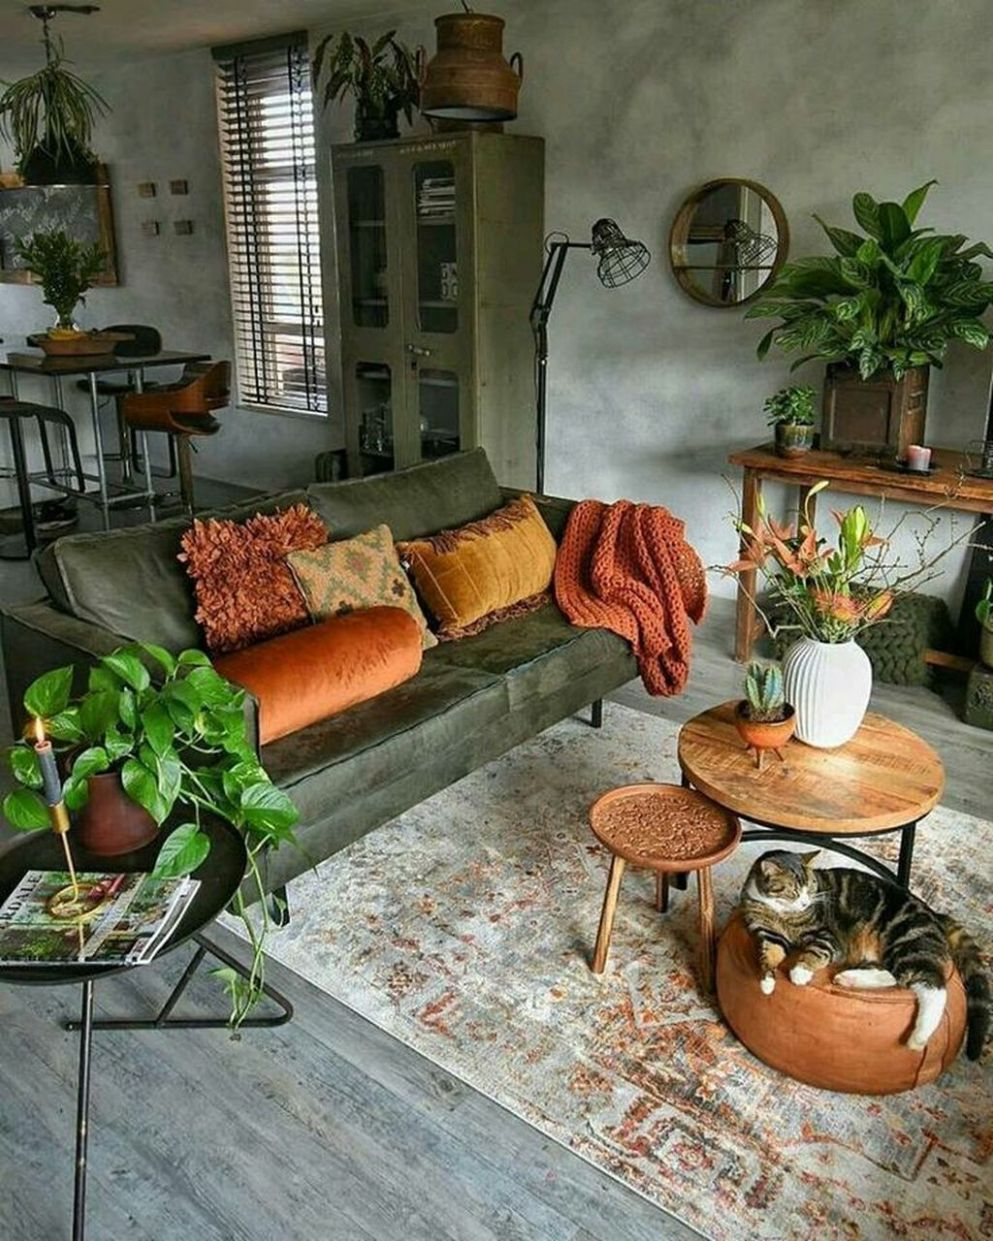 10 The Best Vintage Home Decoration Ideas | Rooms home decor, Big ..